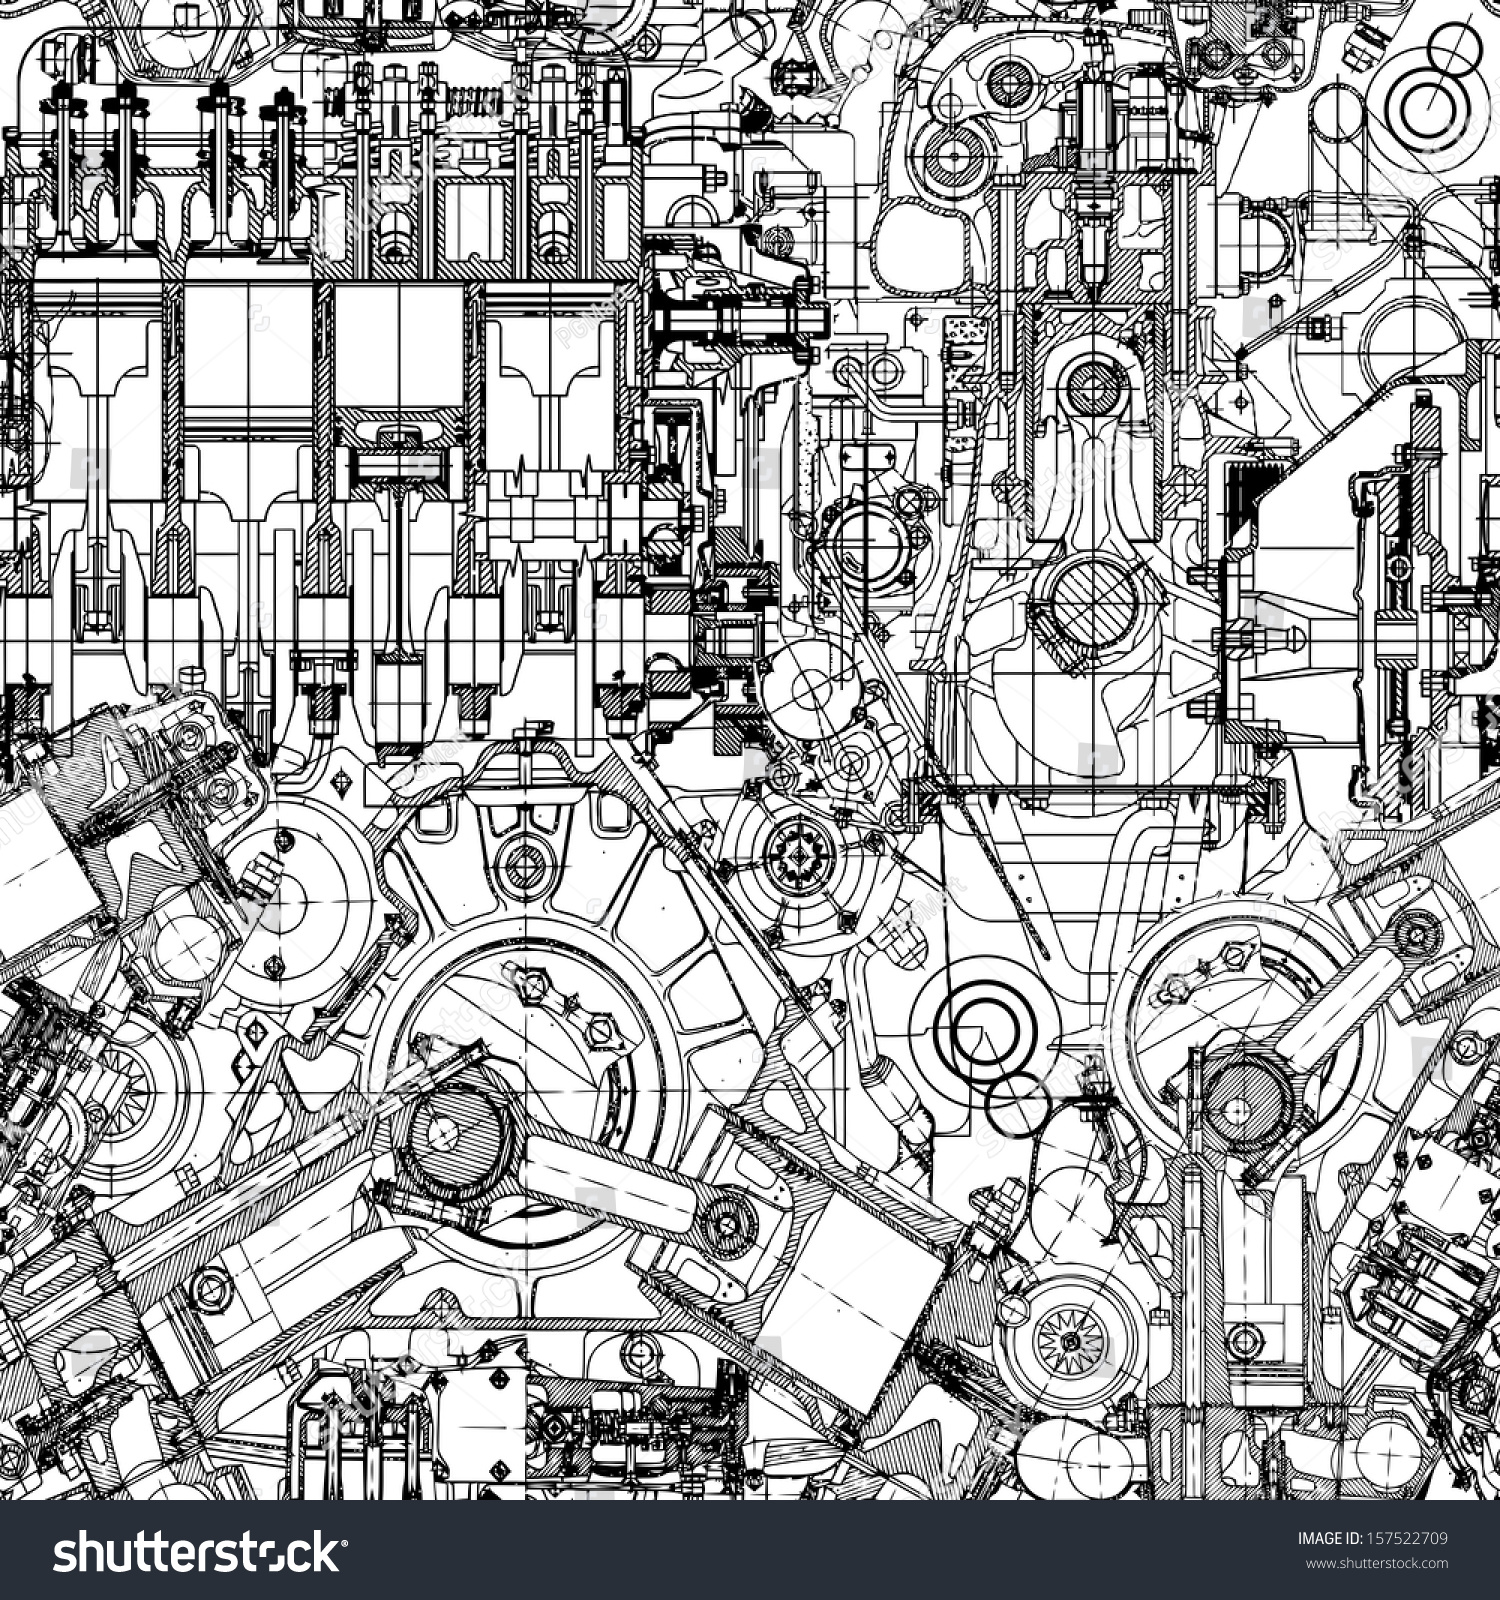 background drawing desktops - photo #46